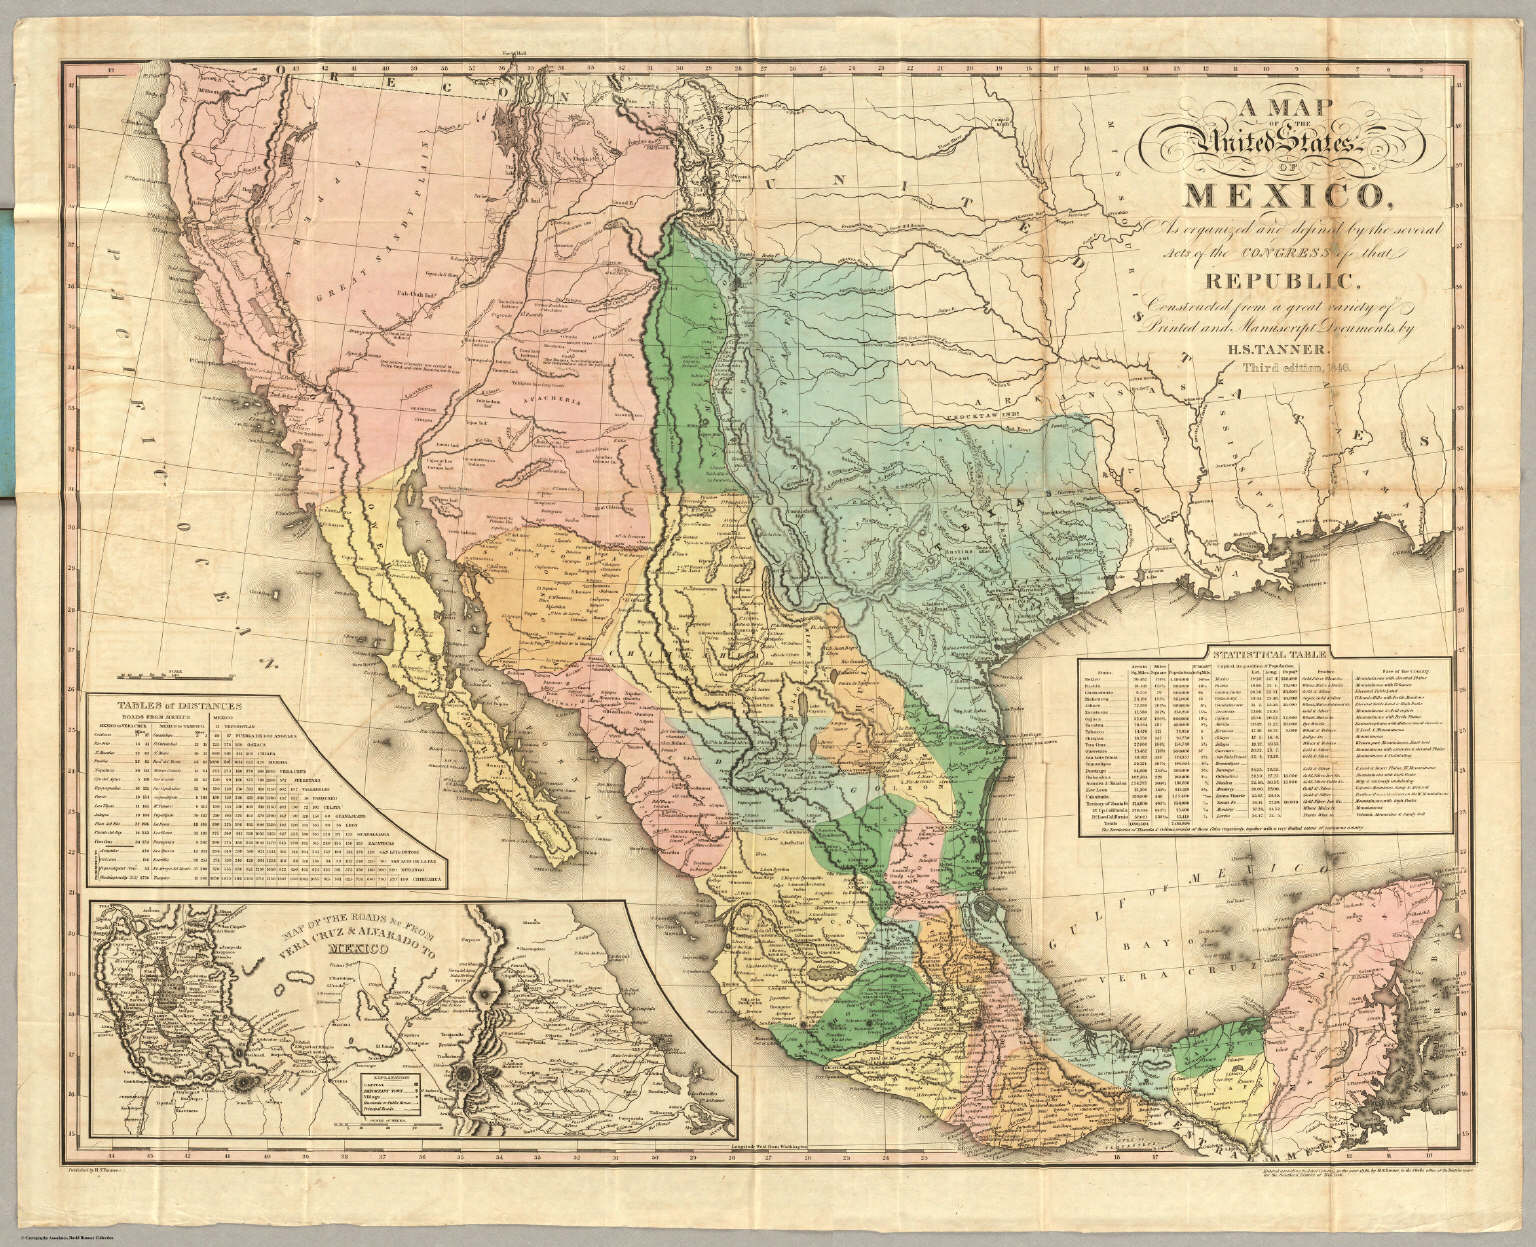 Us Map Mexico.Map Of The United States Of Mexico David Rumsey Historical Map